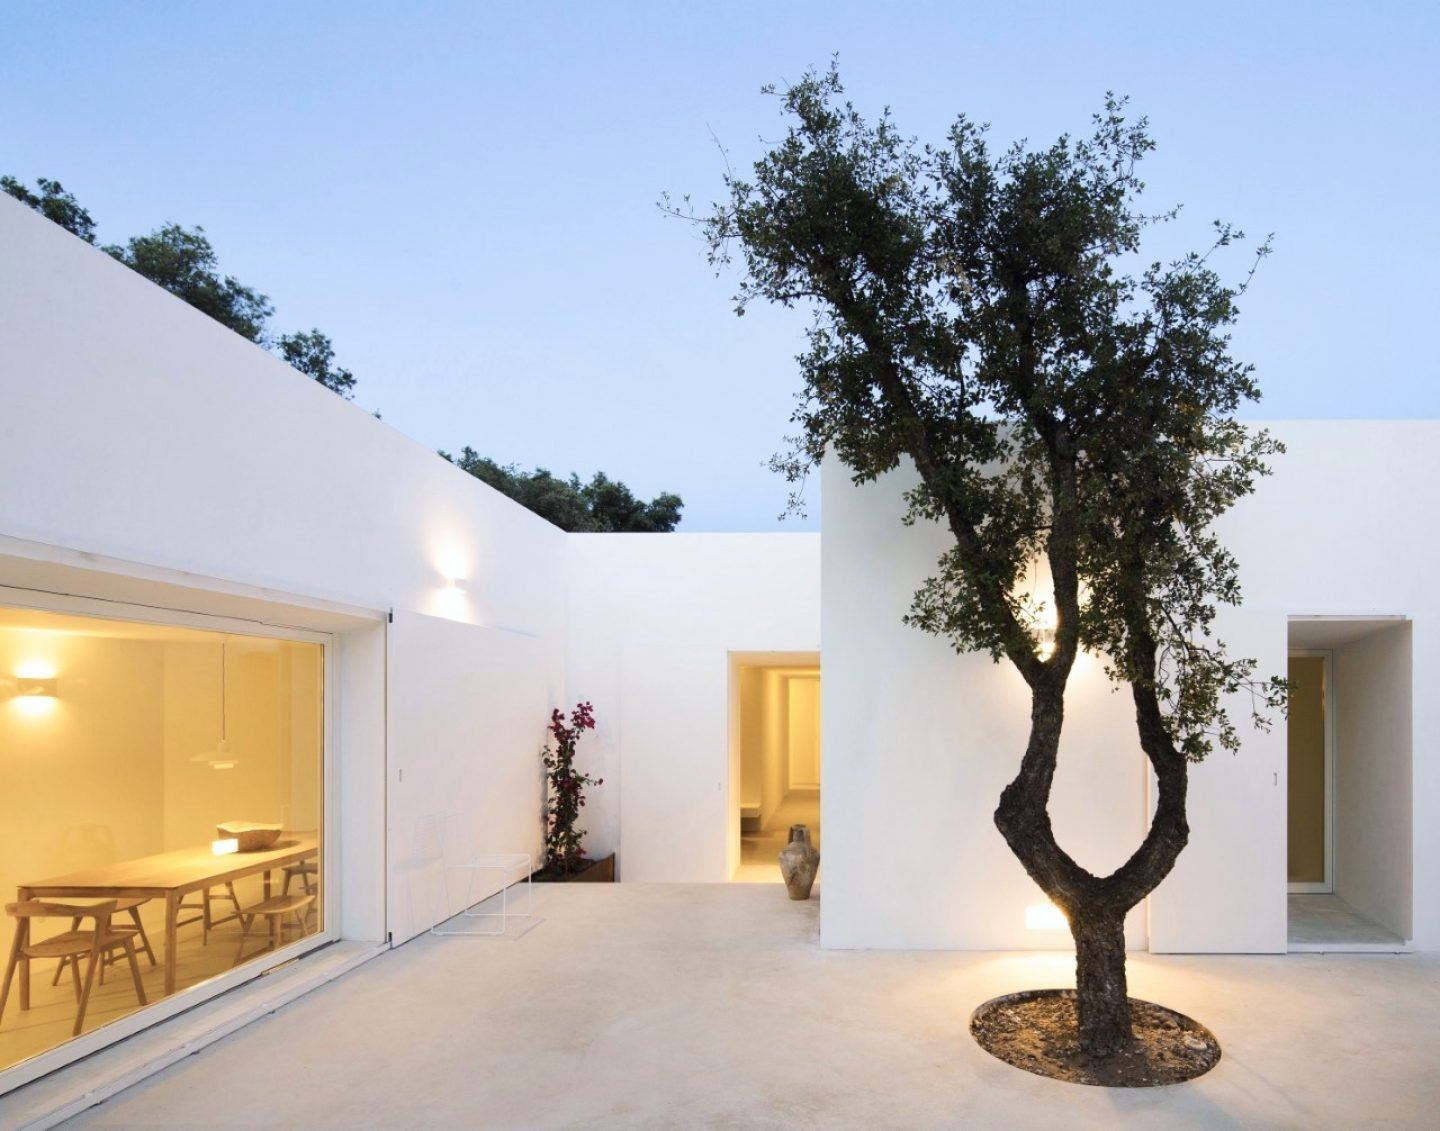 IGNANT-Travel-Casa-Luum-Portugal-10